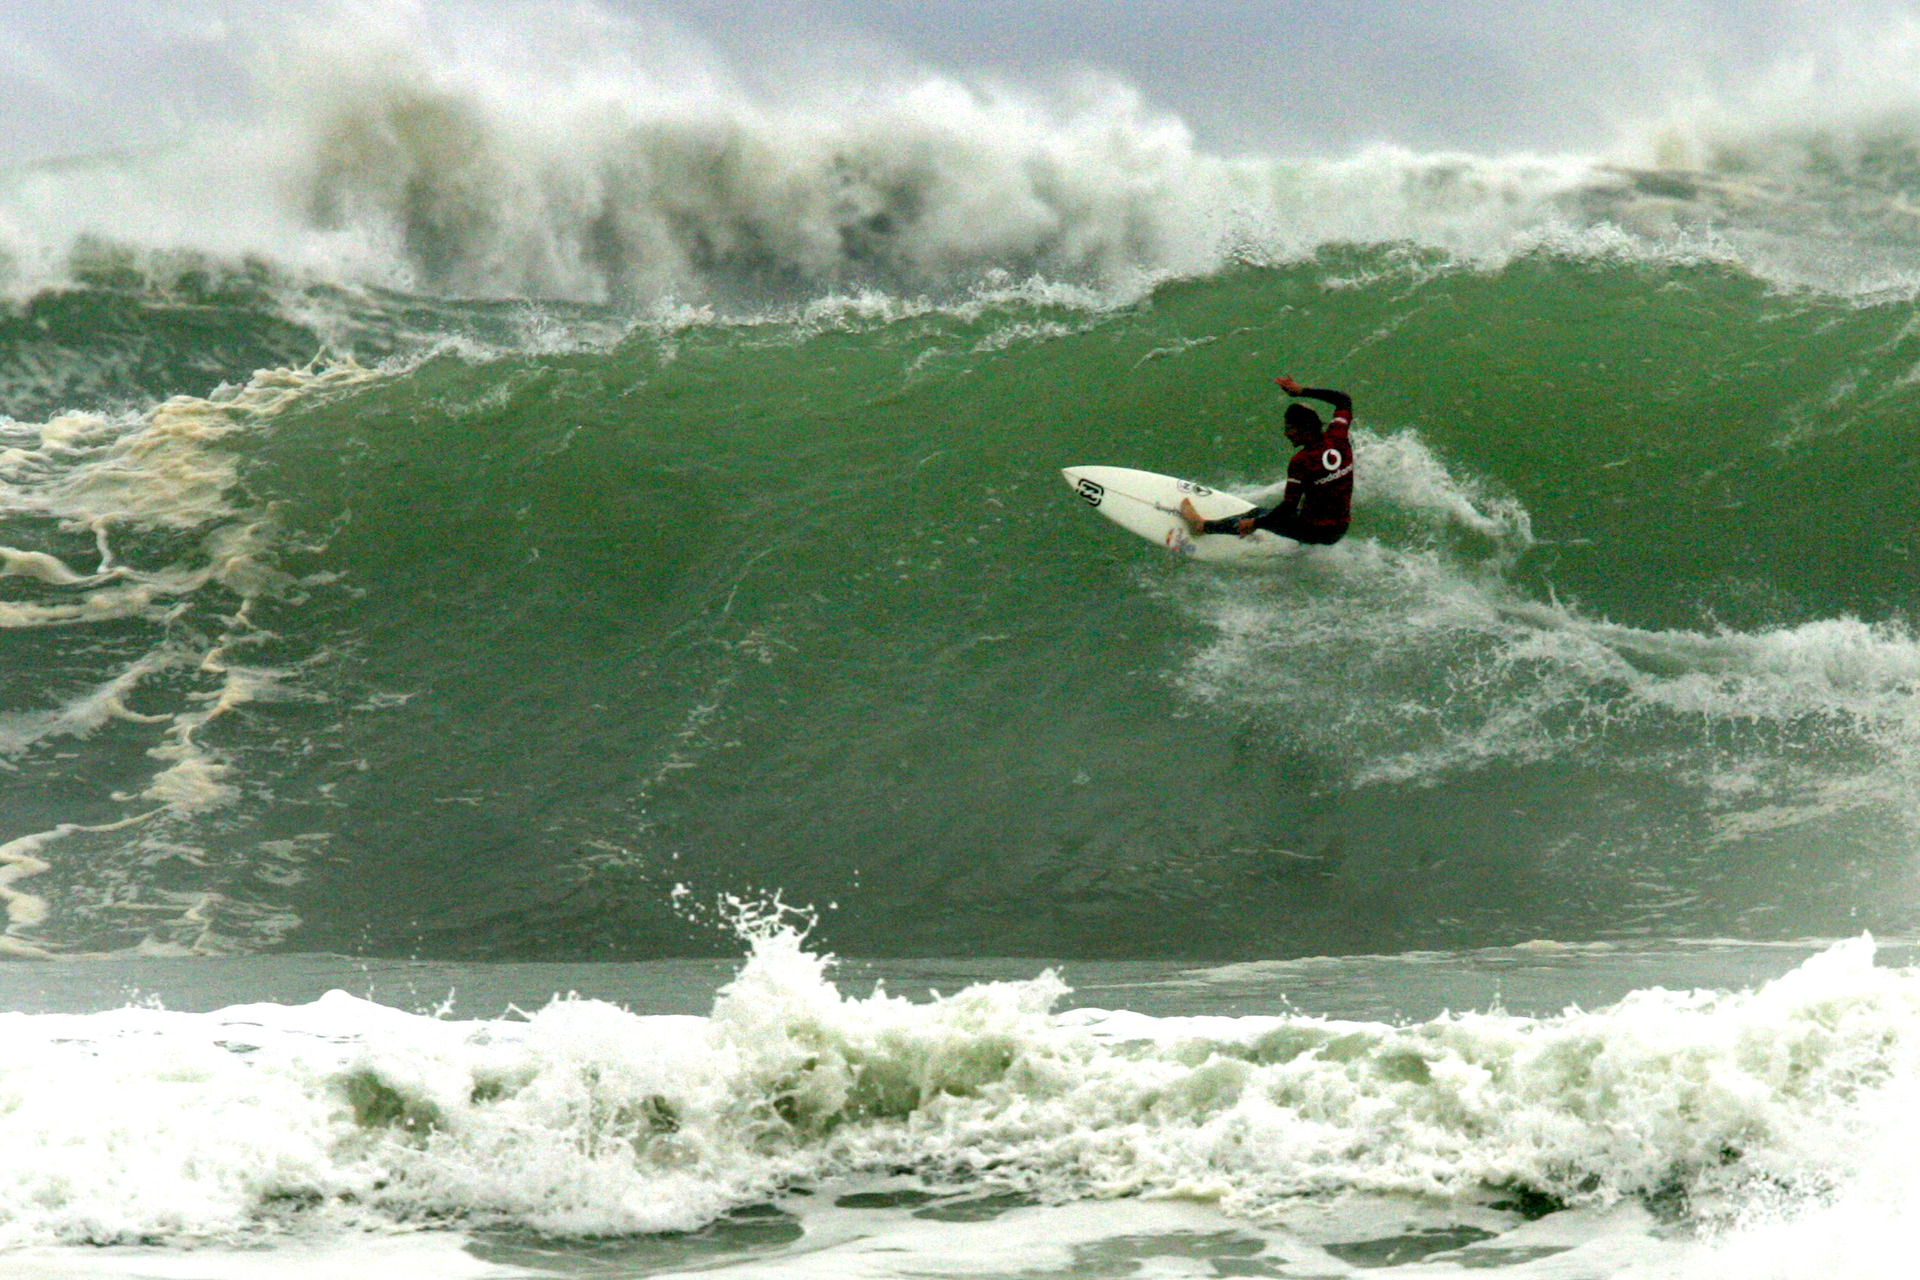 Stoked Ep 73: Stoked on the World Surf League Piha Pro and surfing's return to Aotearoa